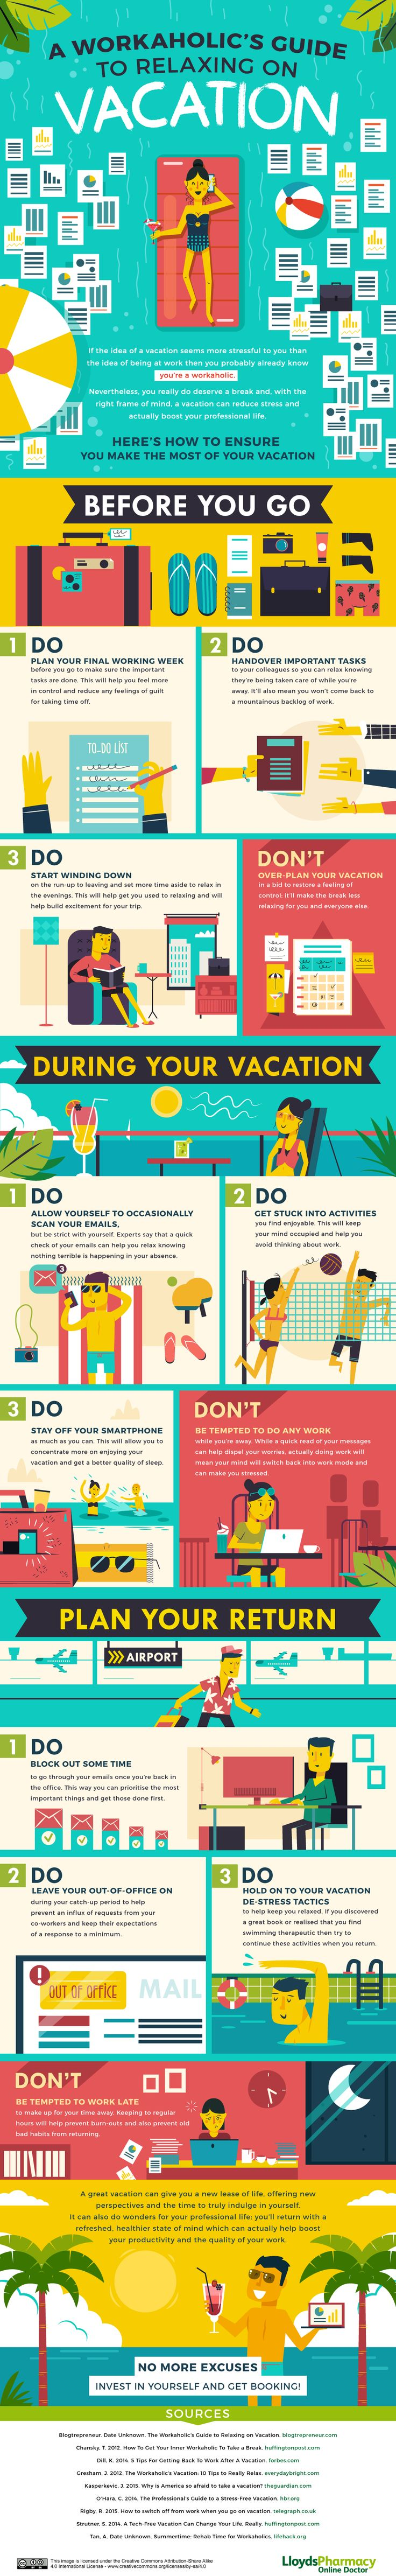 Great tips to avoid thinking about work on your next vacay!  #workaholic #vacation #elax